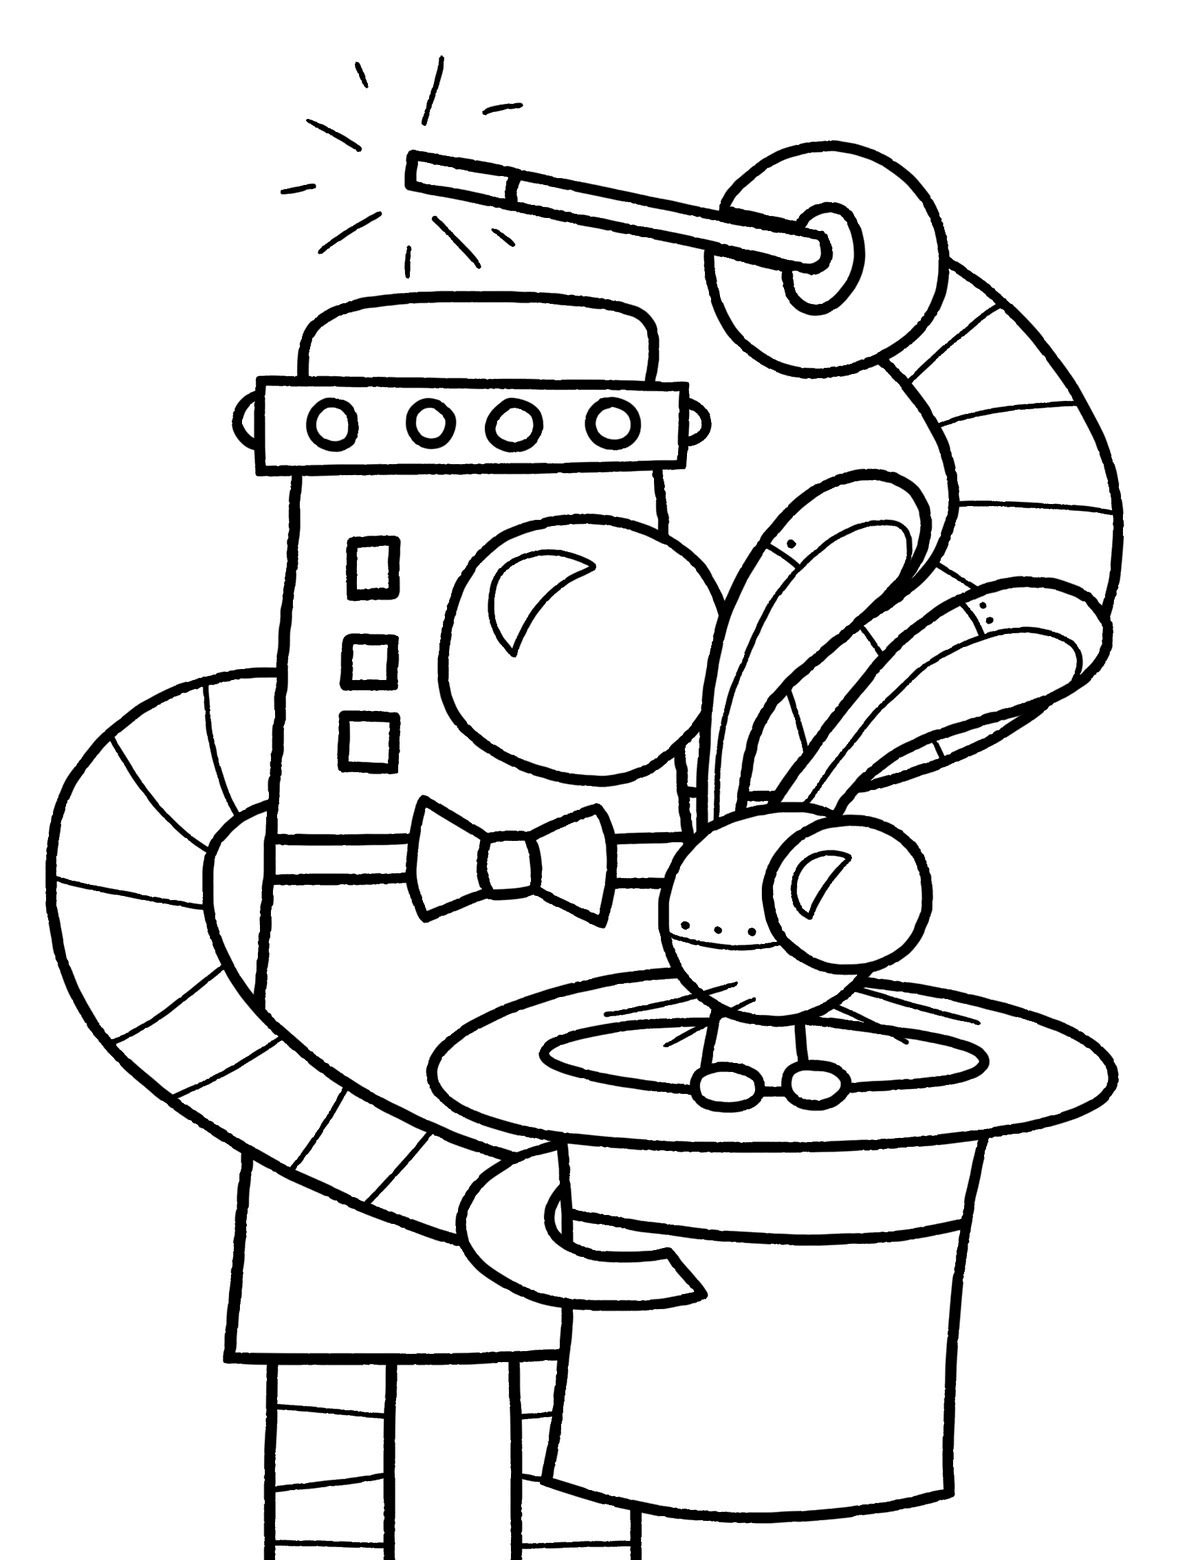 24 Ideas for Robot Coloring Pages for Kids - Home ...